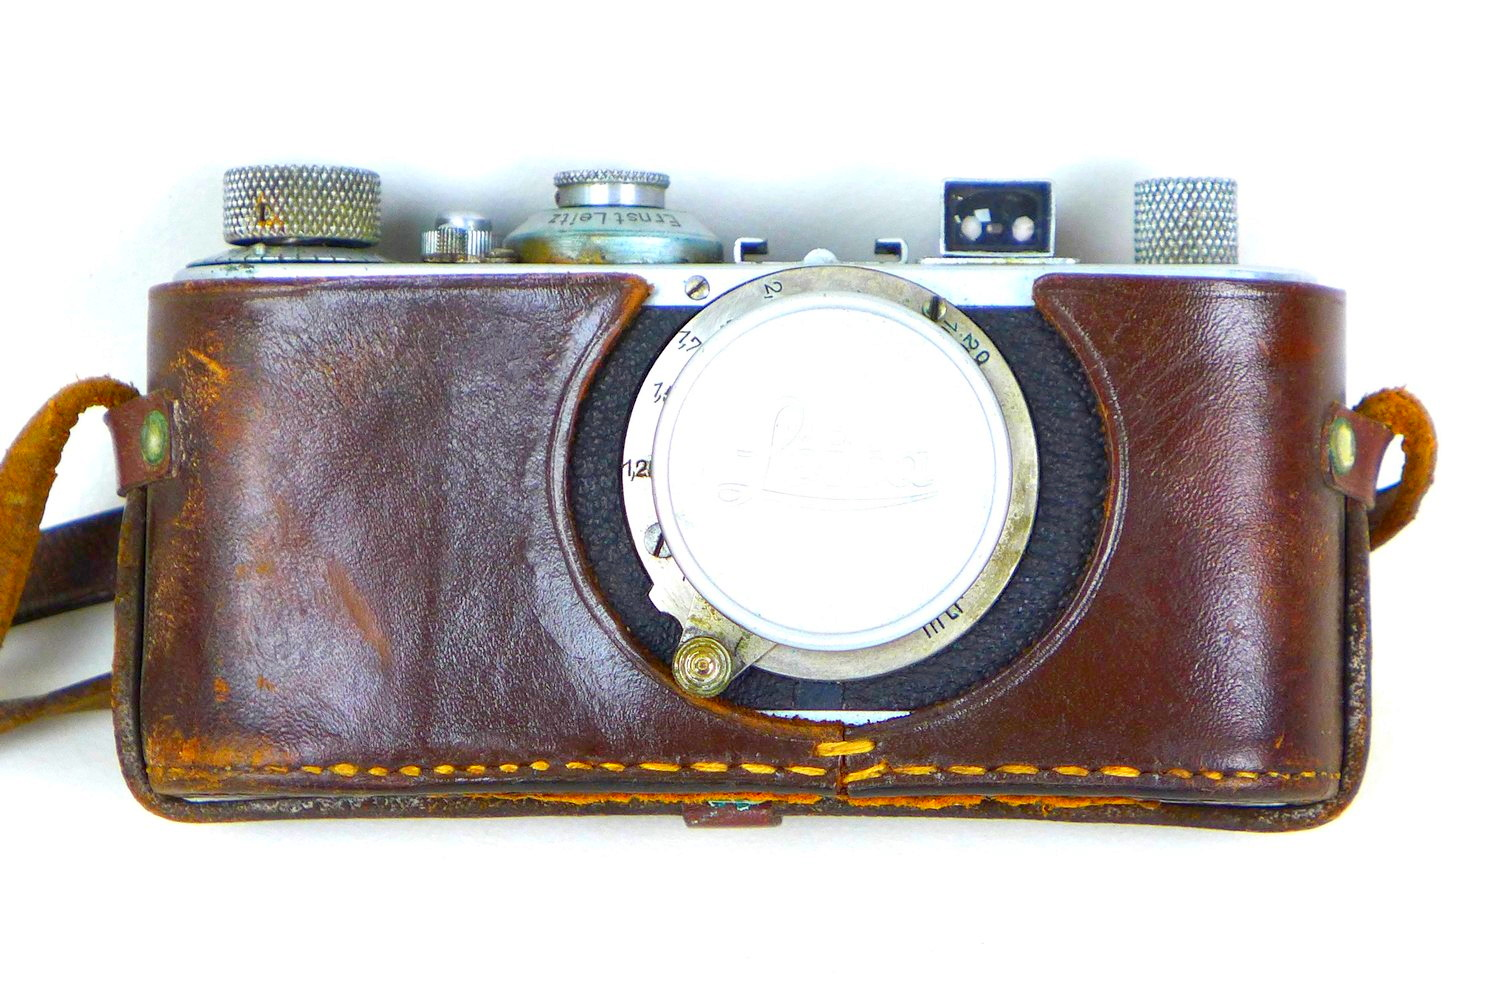 A vintage 1930s Leica camera, with Leitz Elmar 1:3.5 f=50mm lens, serial no. 168496, with chrome and - Image 7 of 8